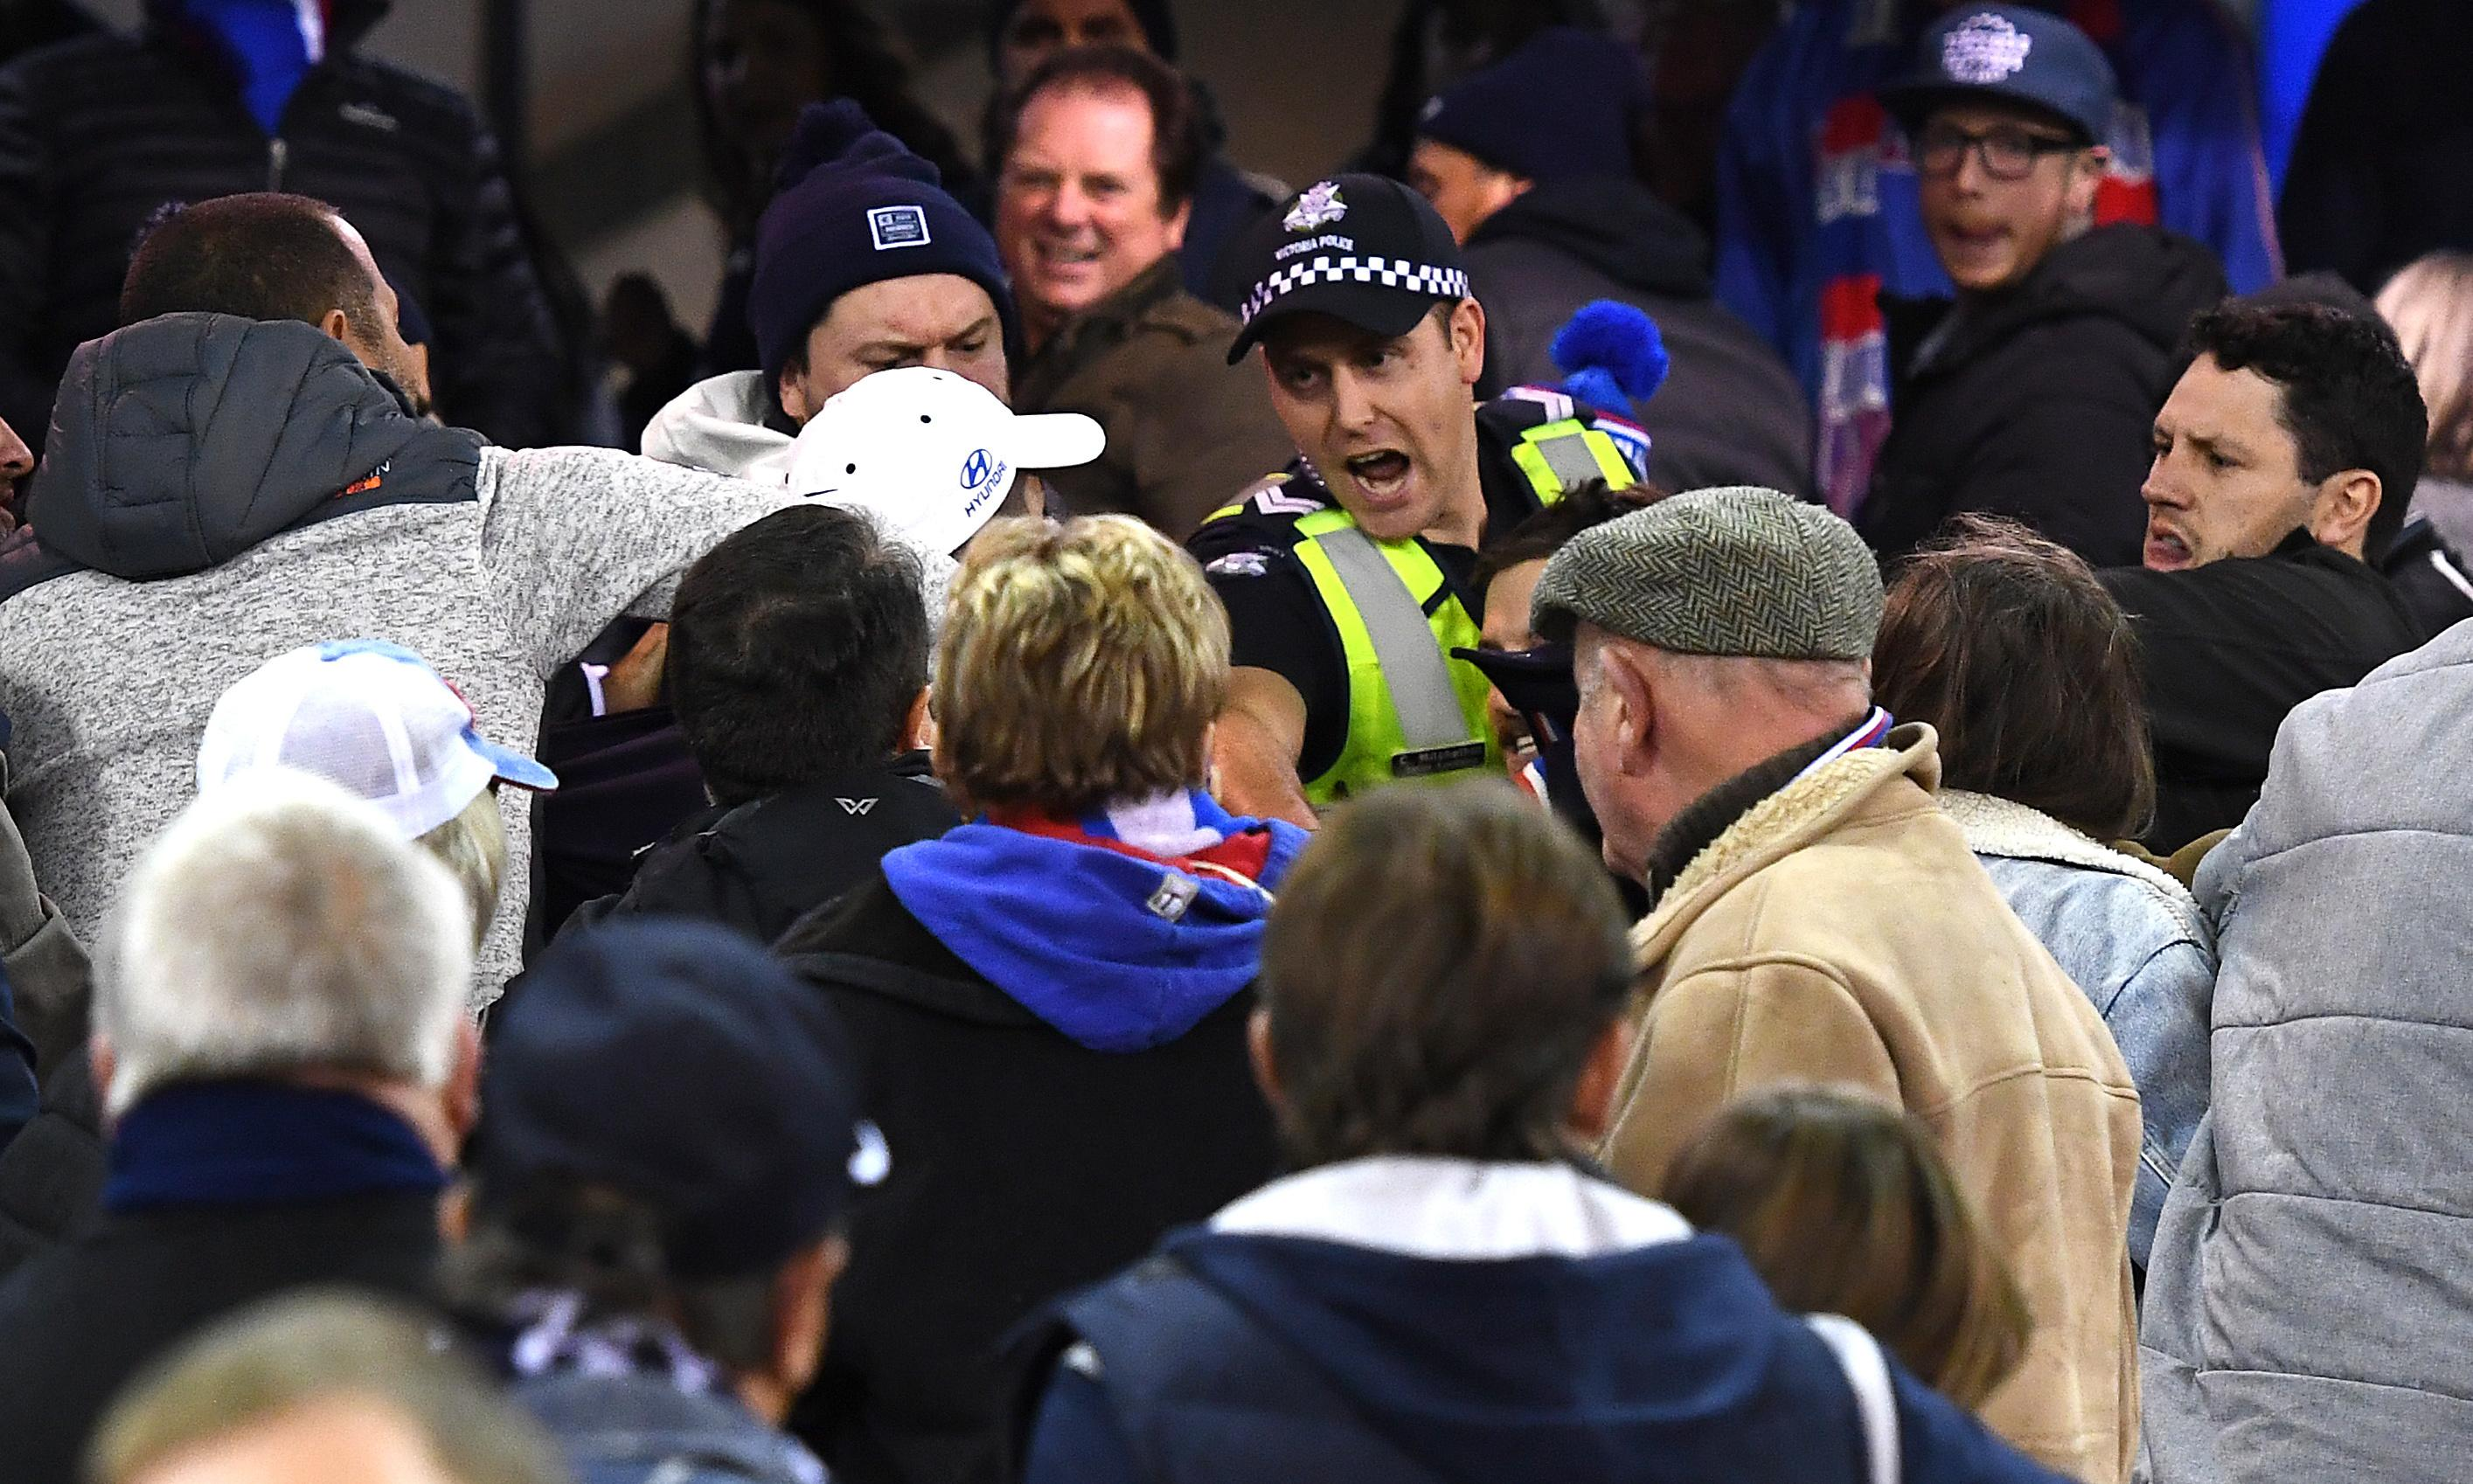 AFL 'devastated' that fans feel intimidated by security measures